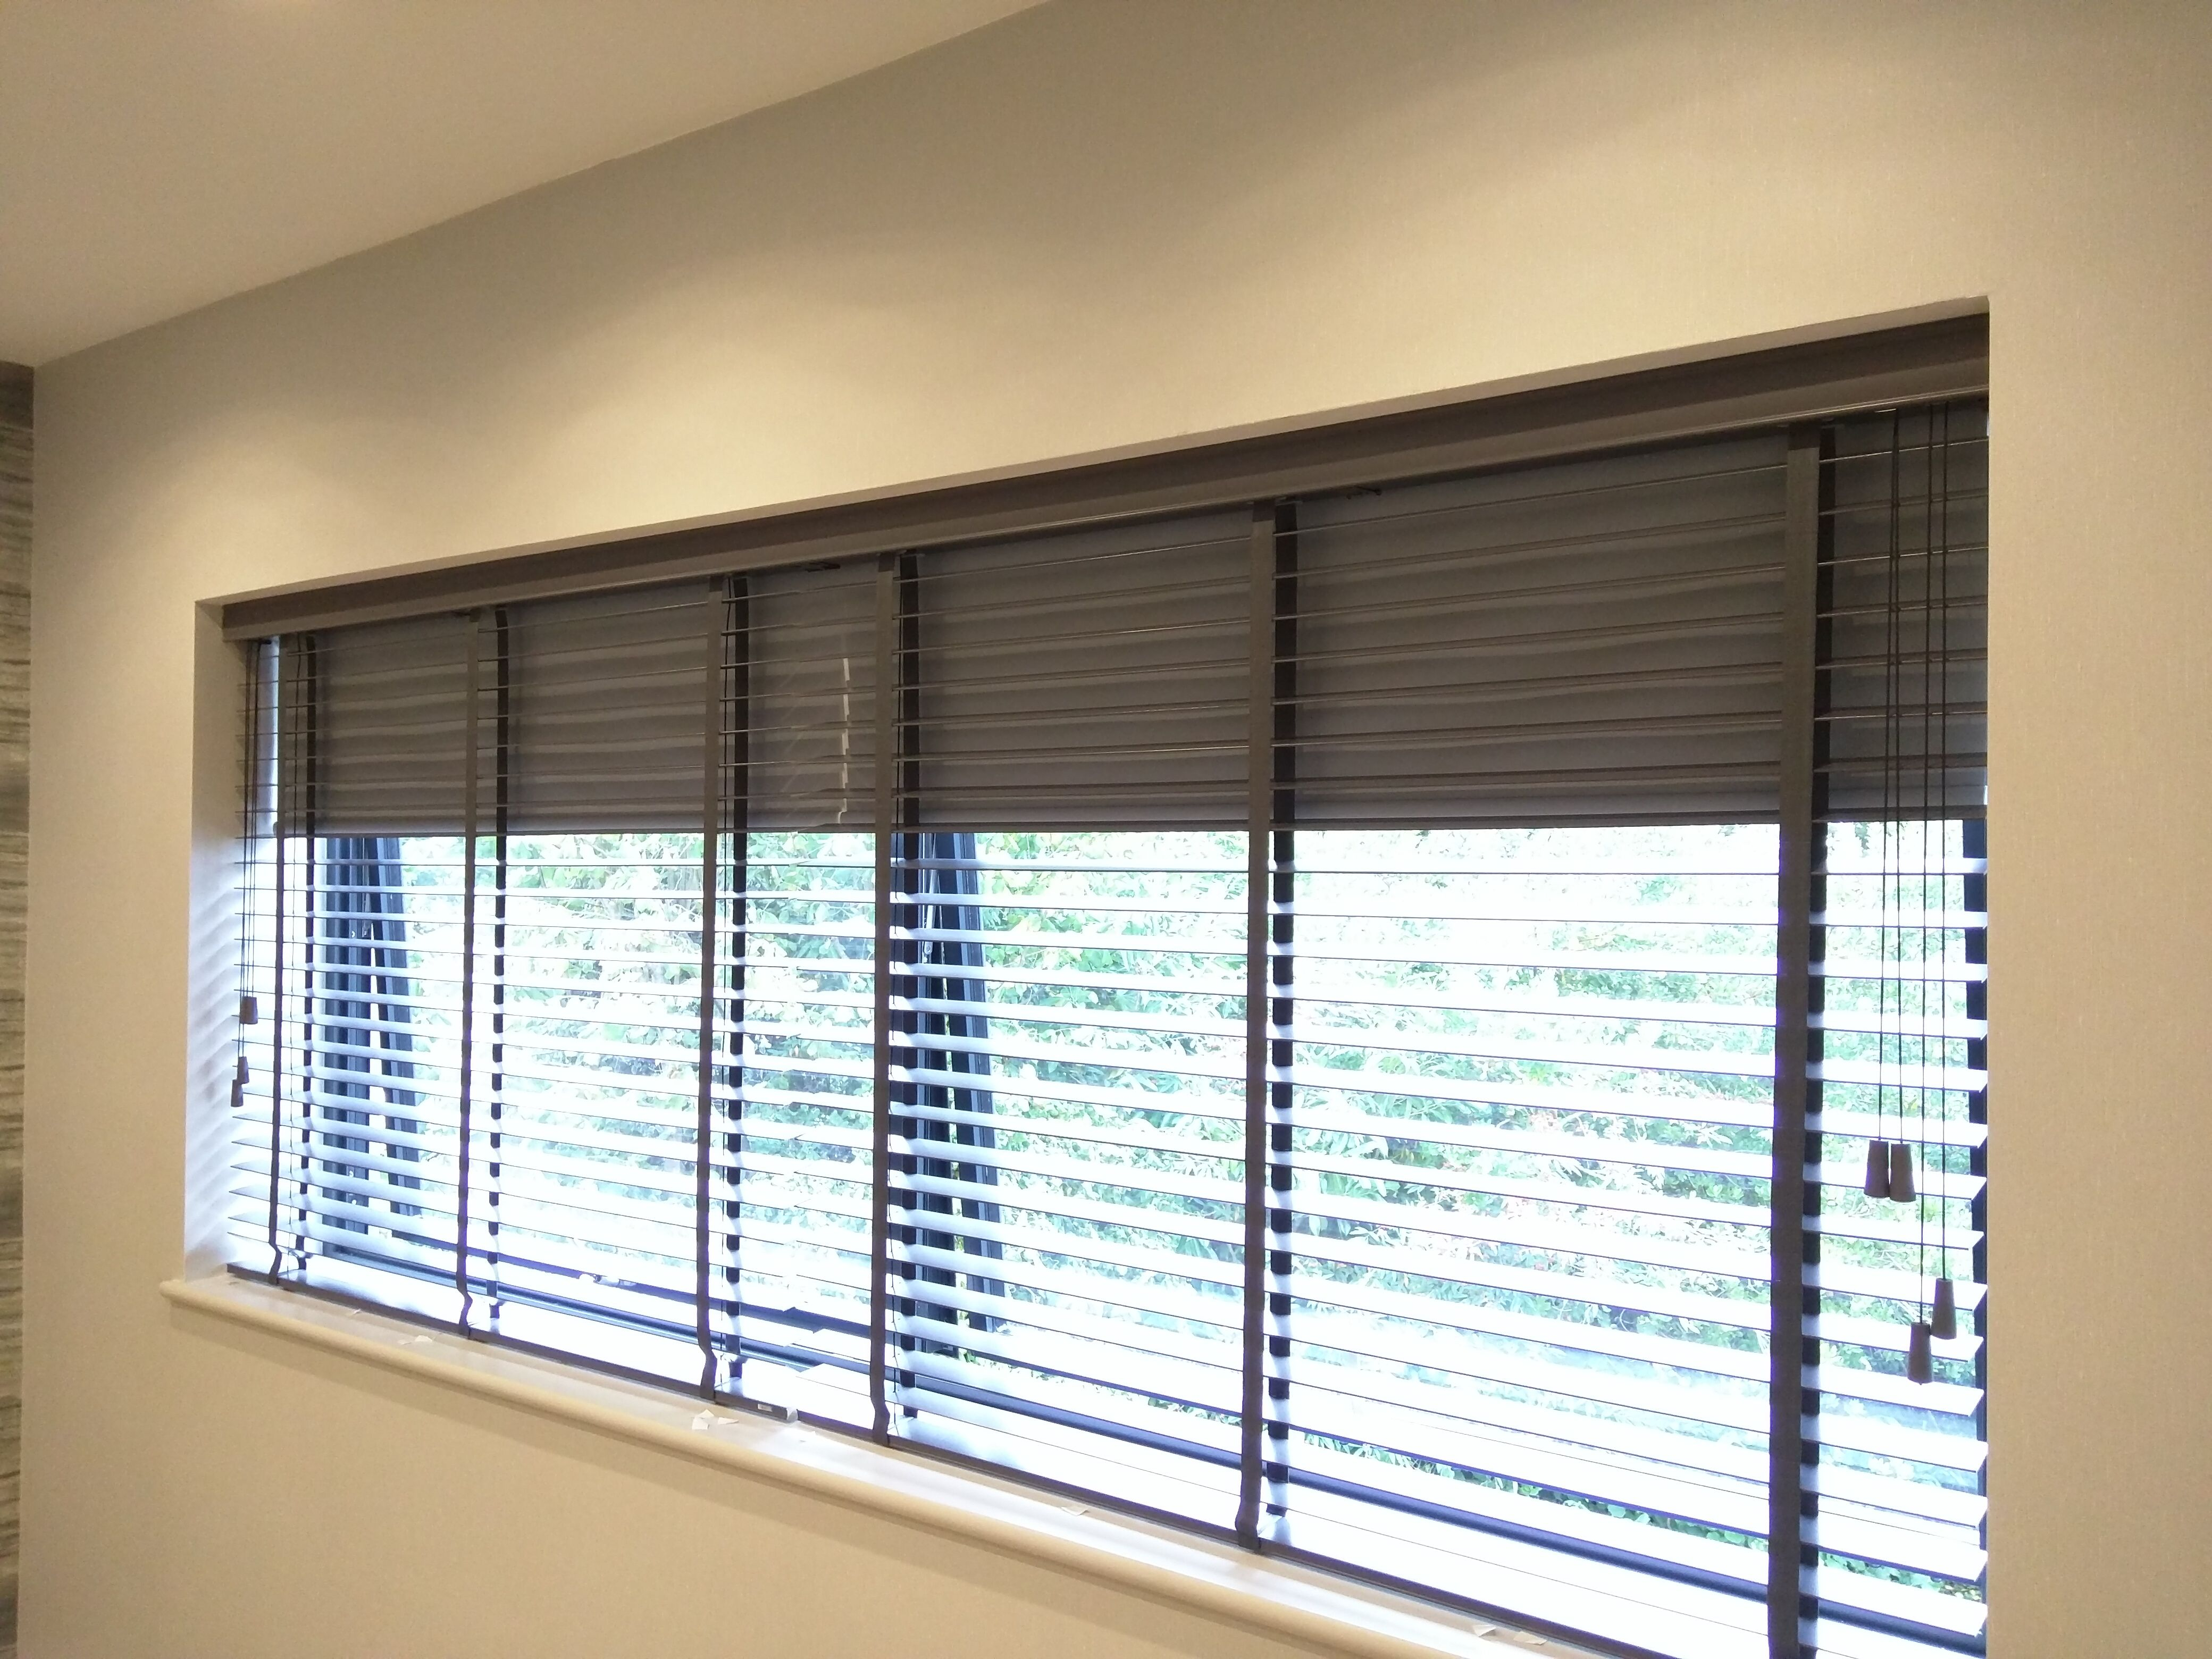 Wood Venetian Blind With Blackout Roller Blind Behind Fitted To